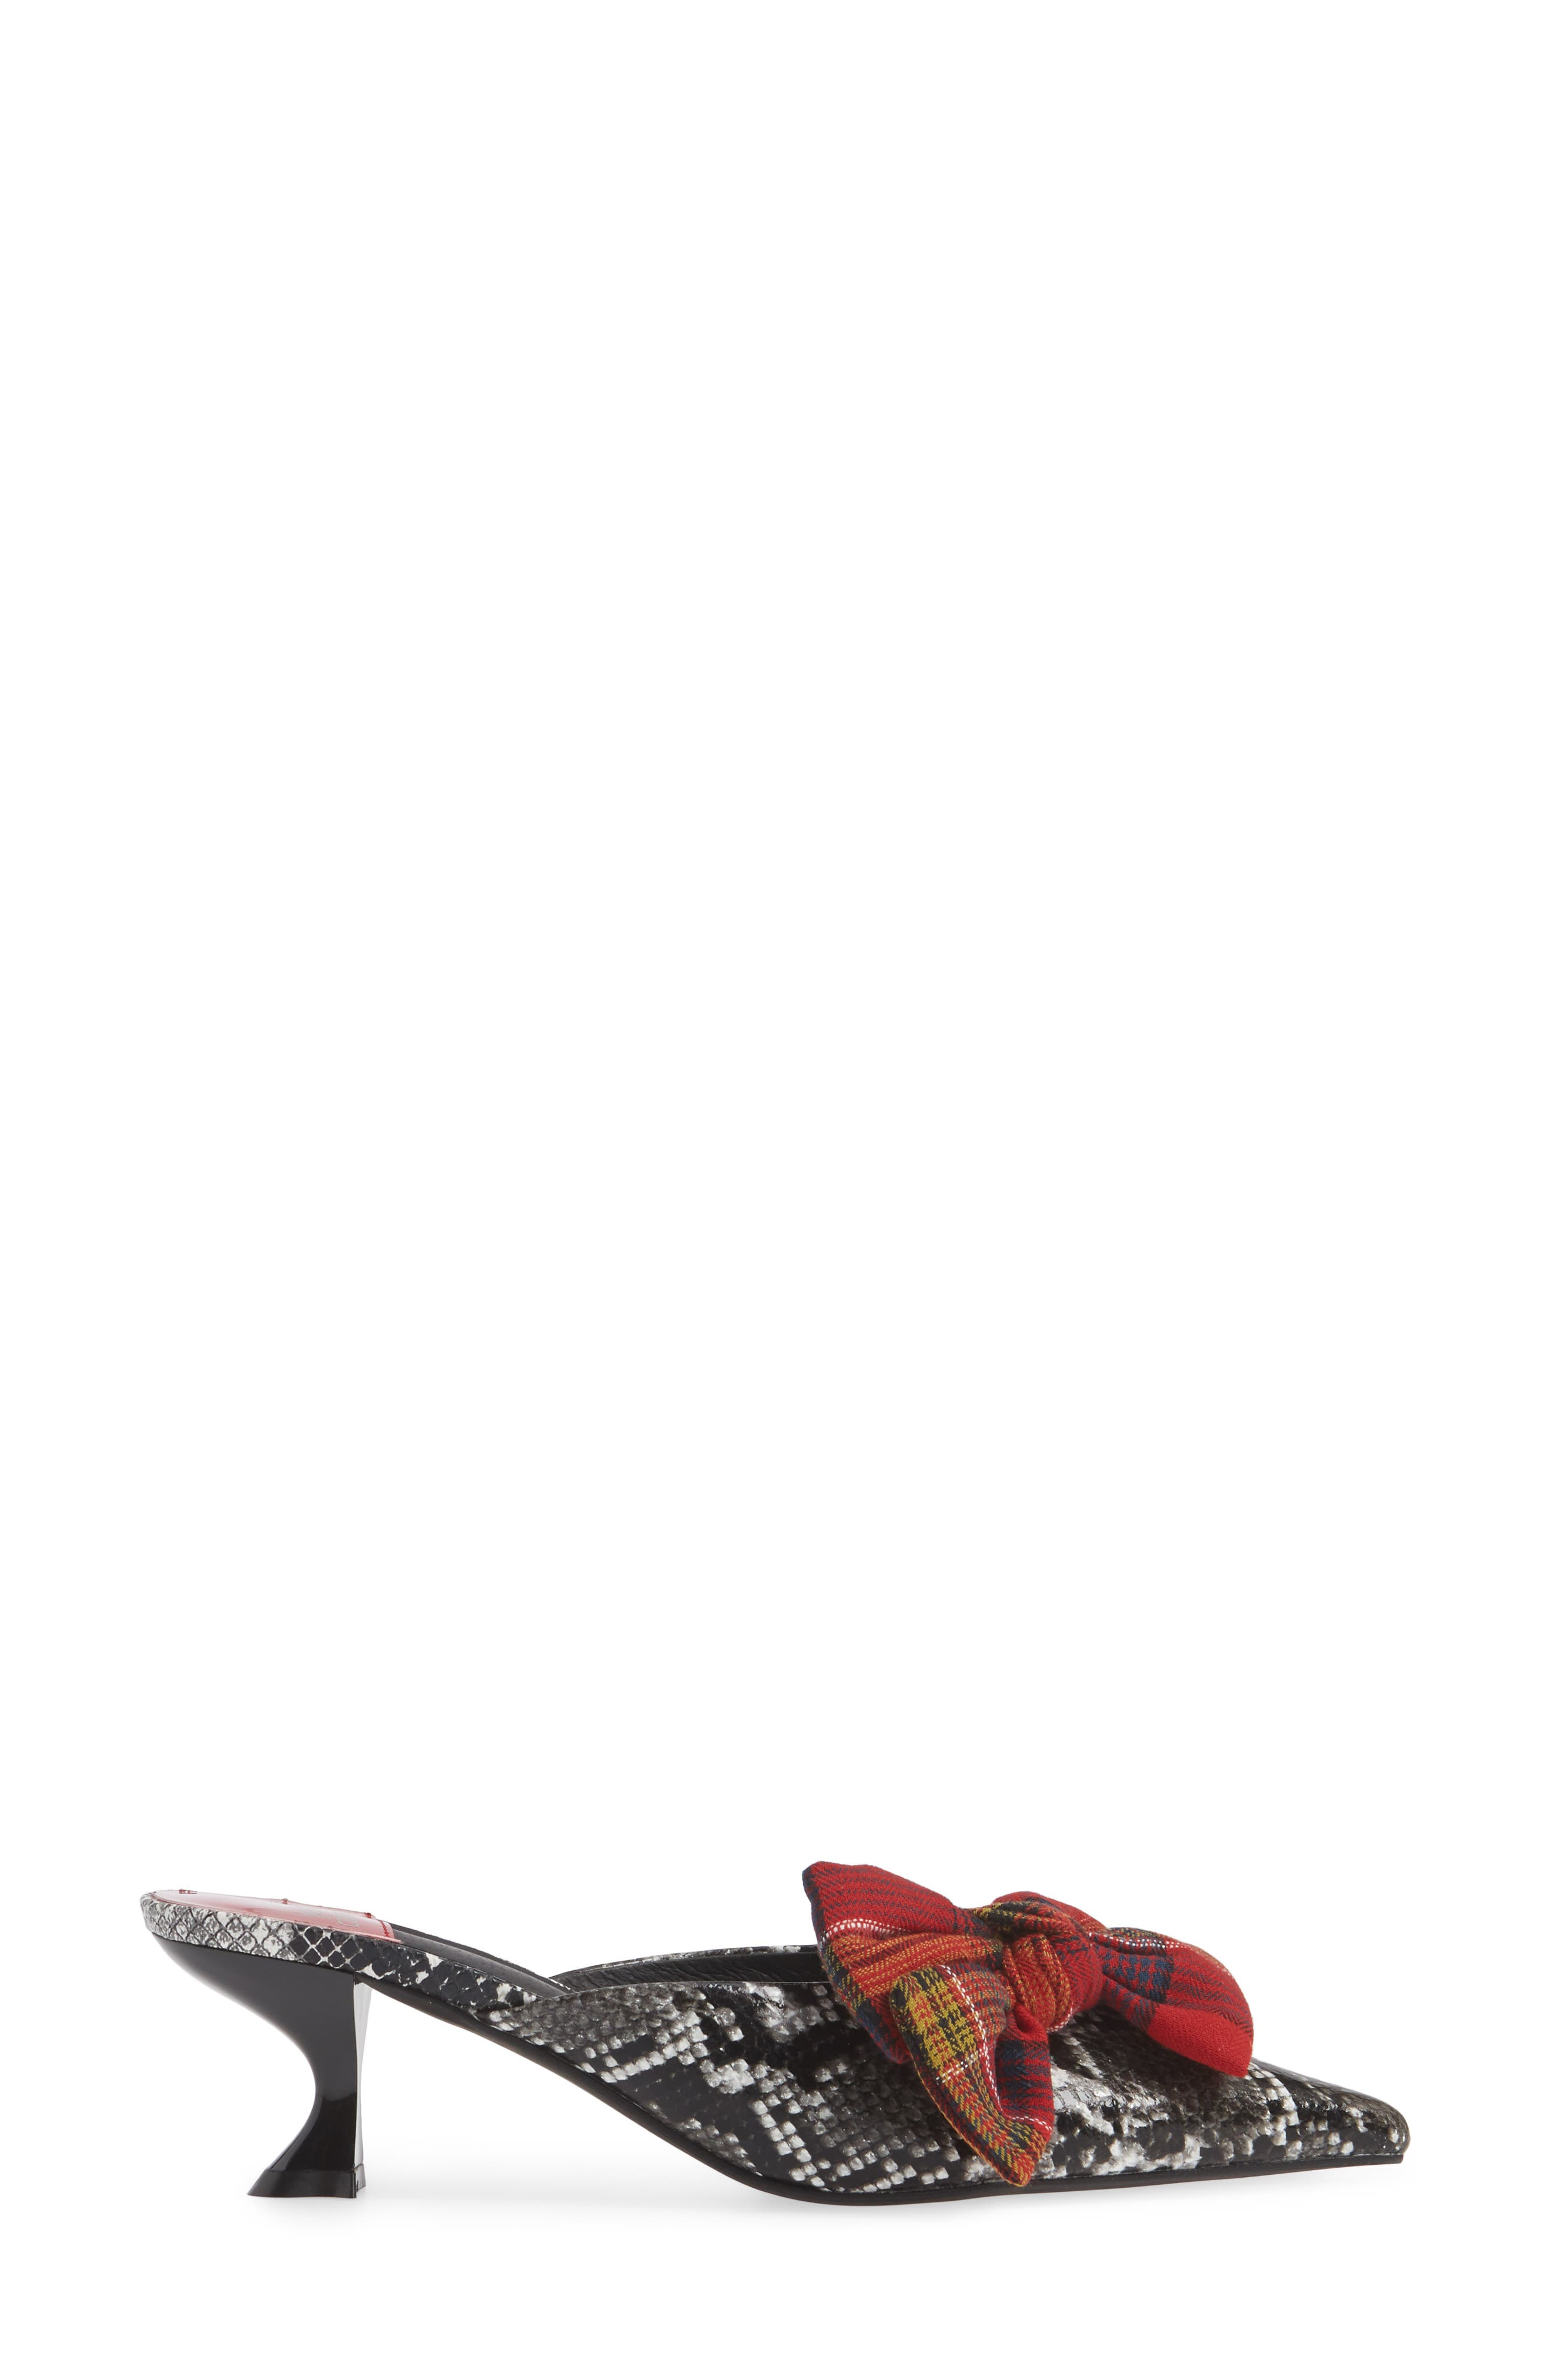 JEFFREY CAMPBELL, Adorn Pointy Toe Mule, Alternate thumbnail 3, color, GREY BLACK SNAKE / RED PLAID